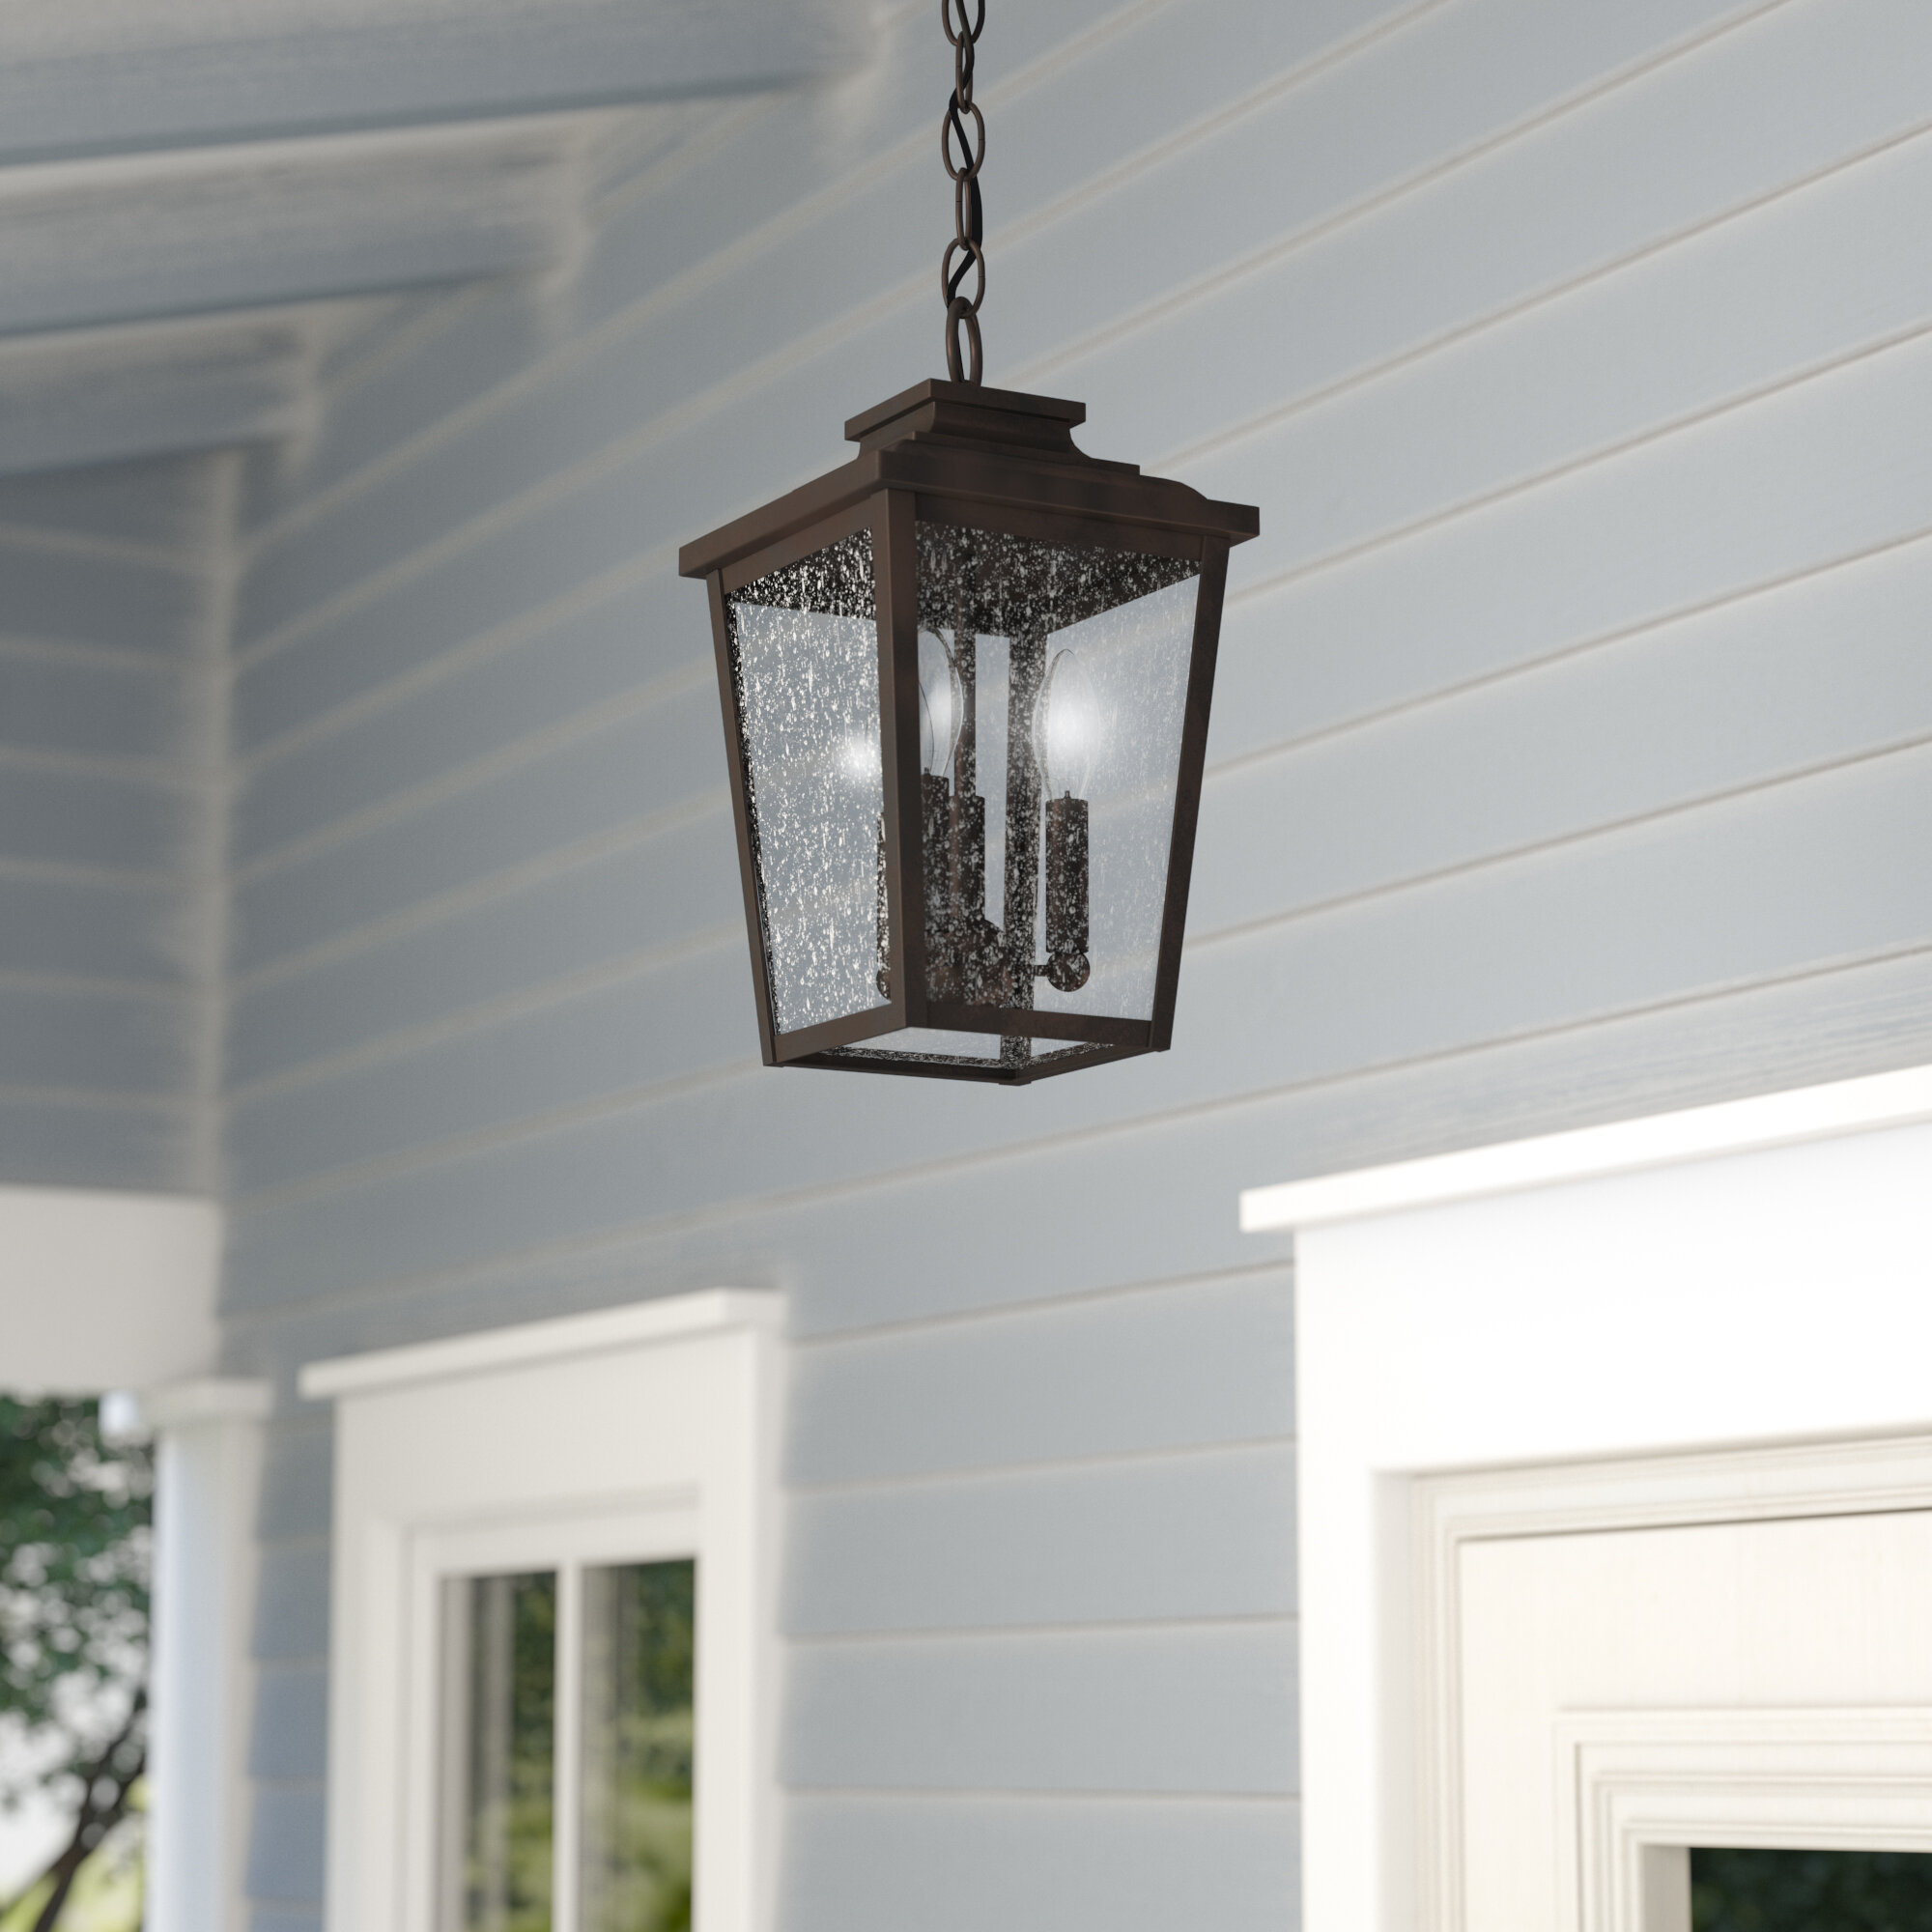 lights decorate beautiful hanging outdoor with your space fixtures lighting blogs gardening light